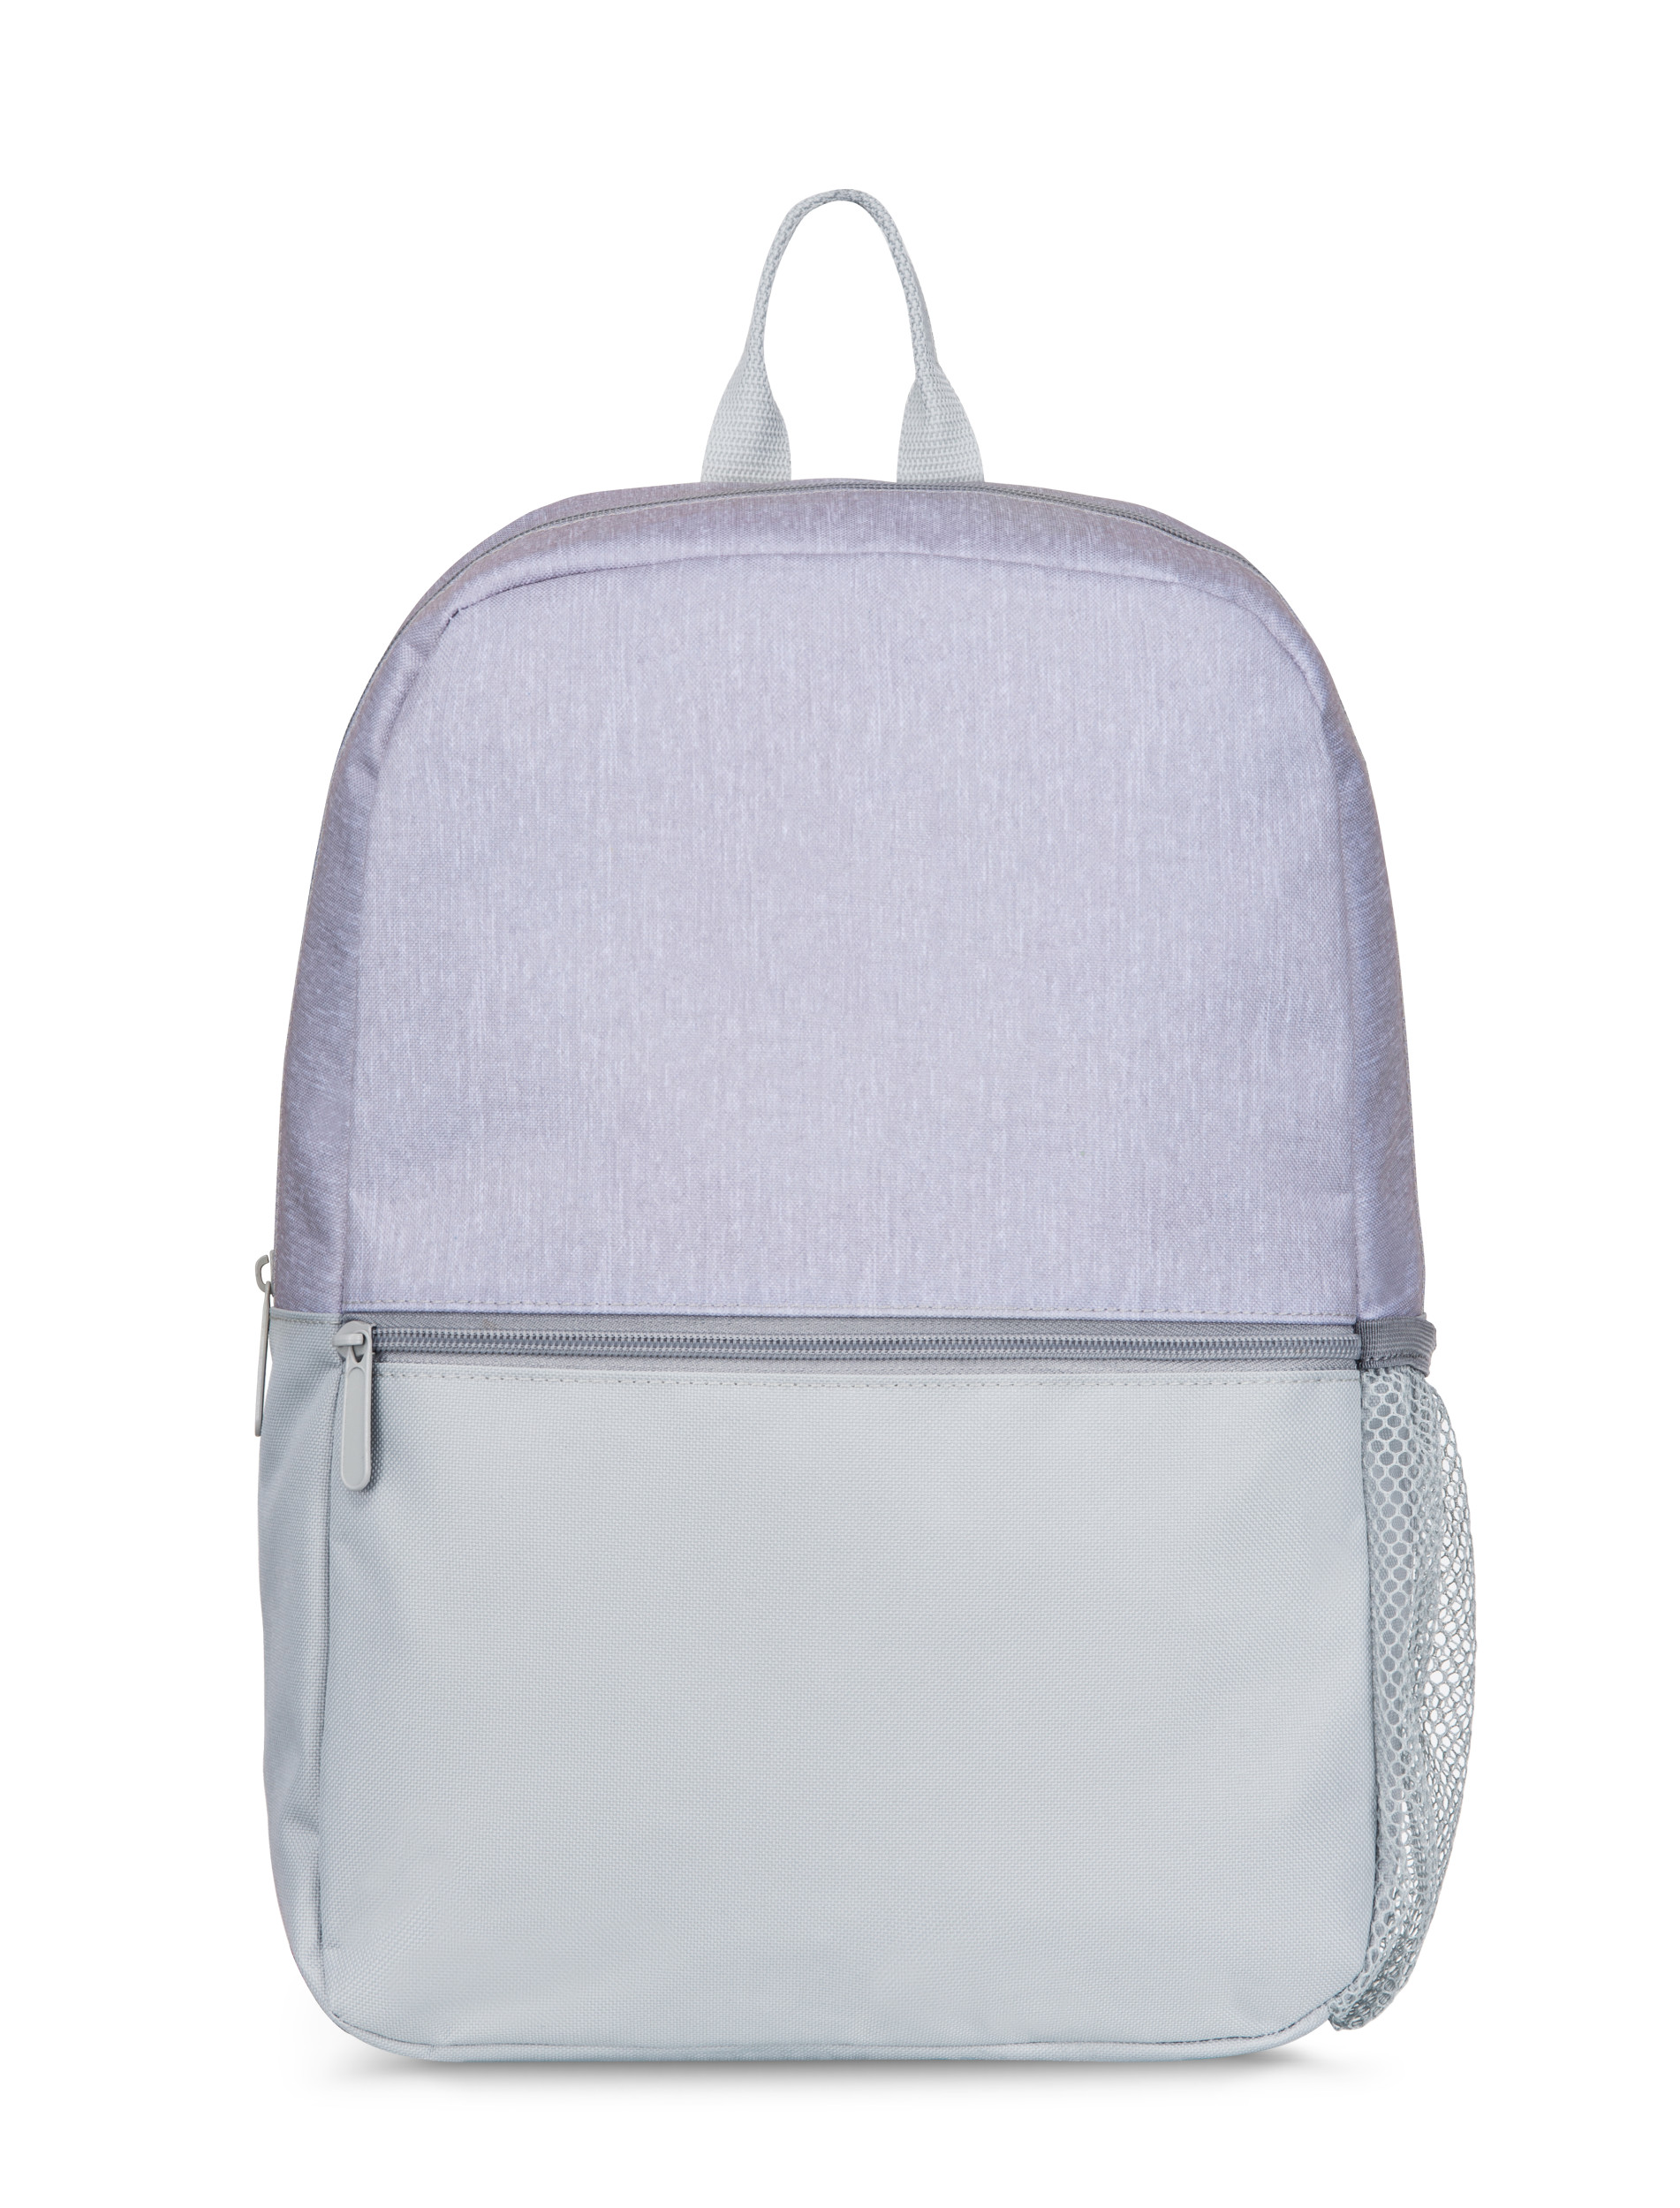 Gemline 100067 - Astoria Backpack